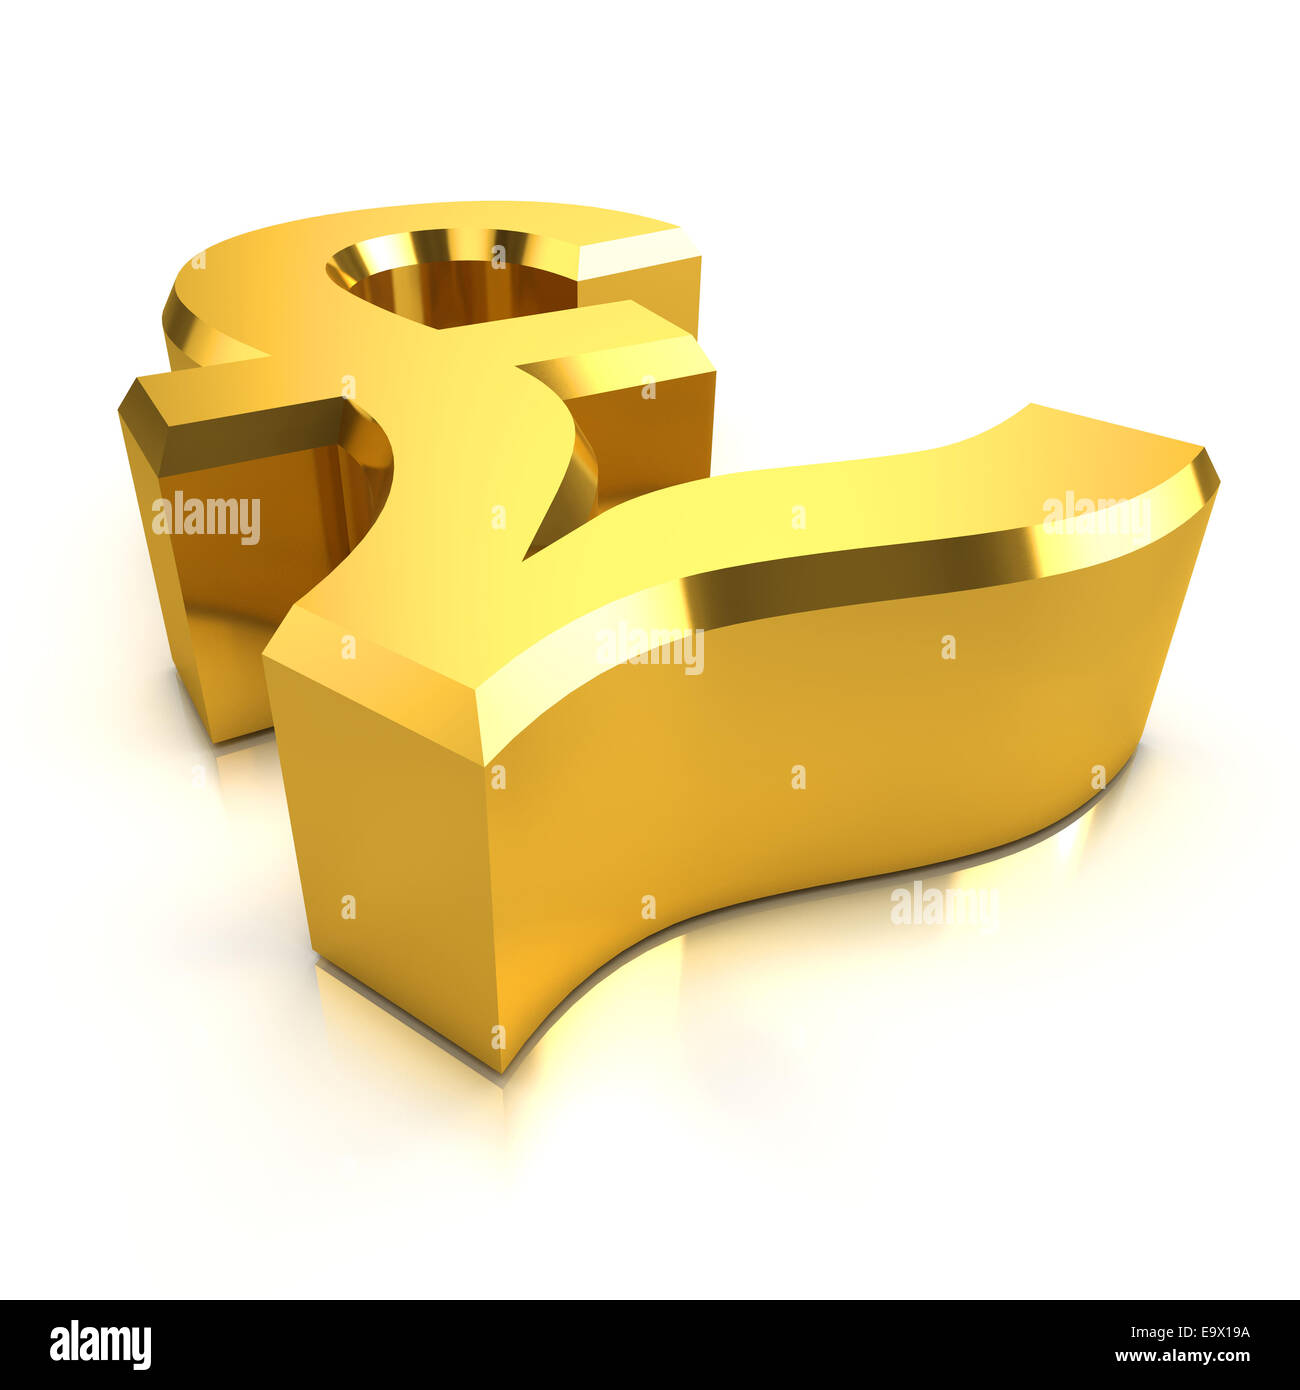 3d render of a gold uk pounds sterling currency symbol stock photo 3d render of a gold uk pounds sterling currency symbol biocorpaavc Gallery